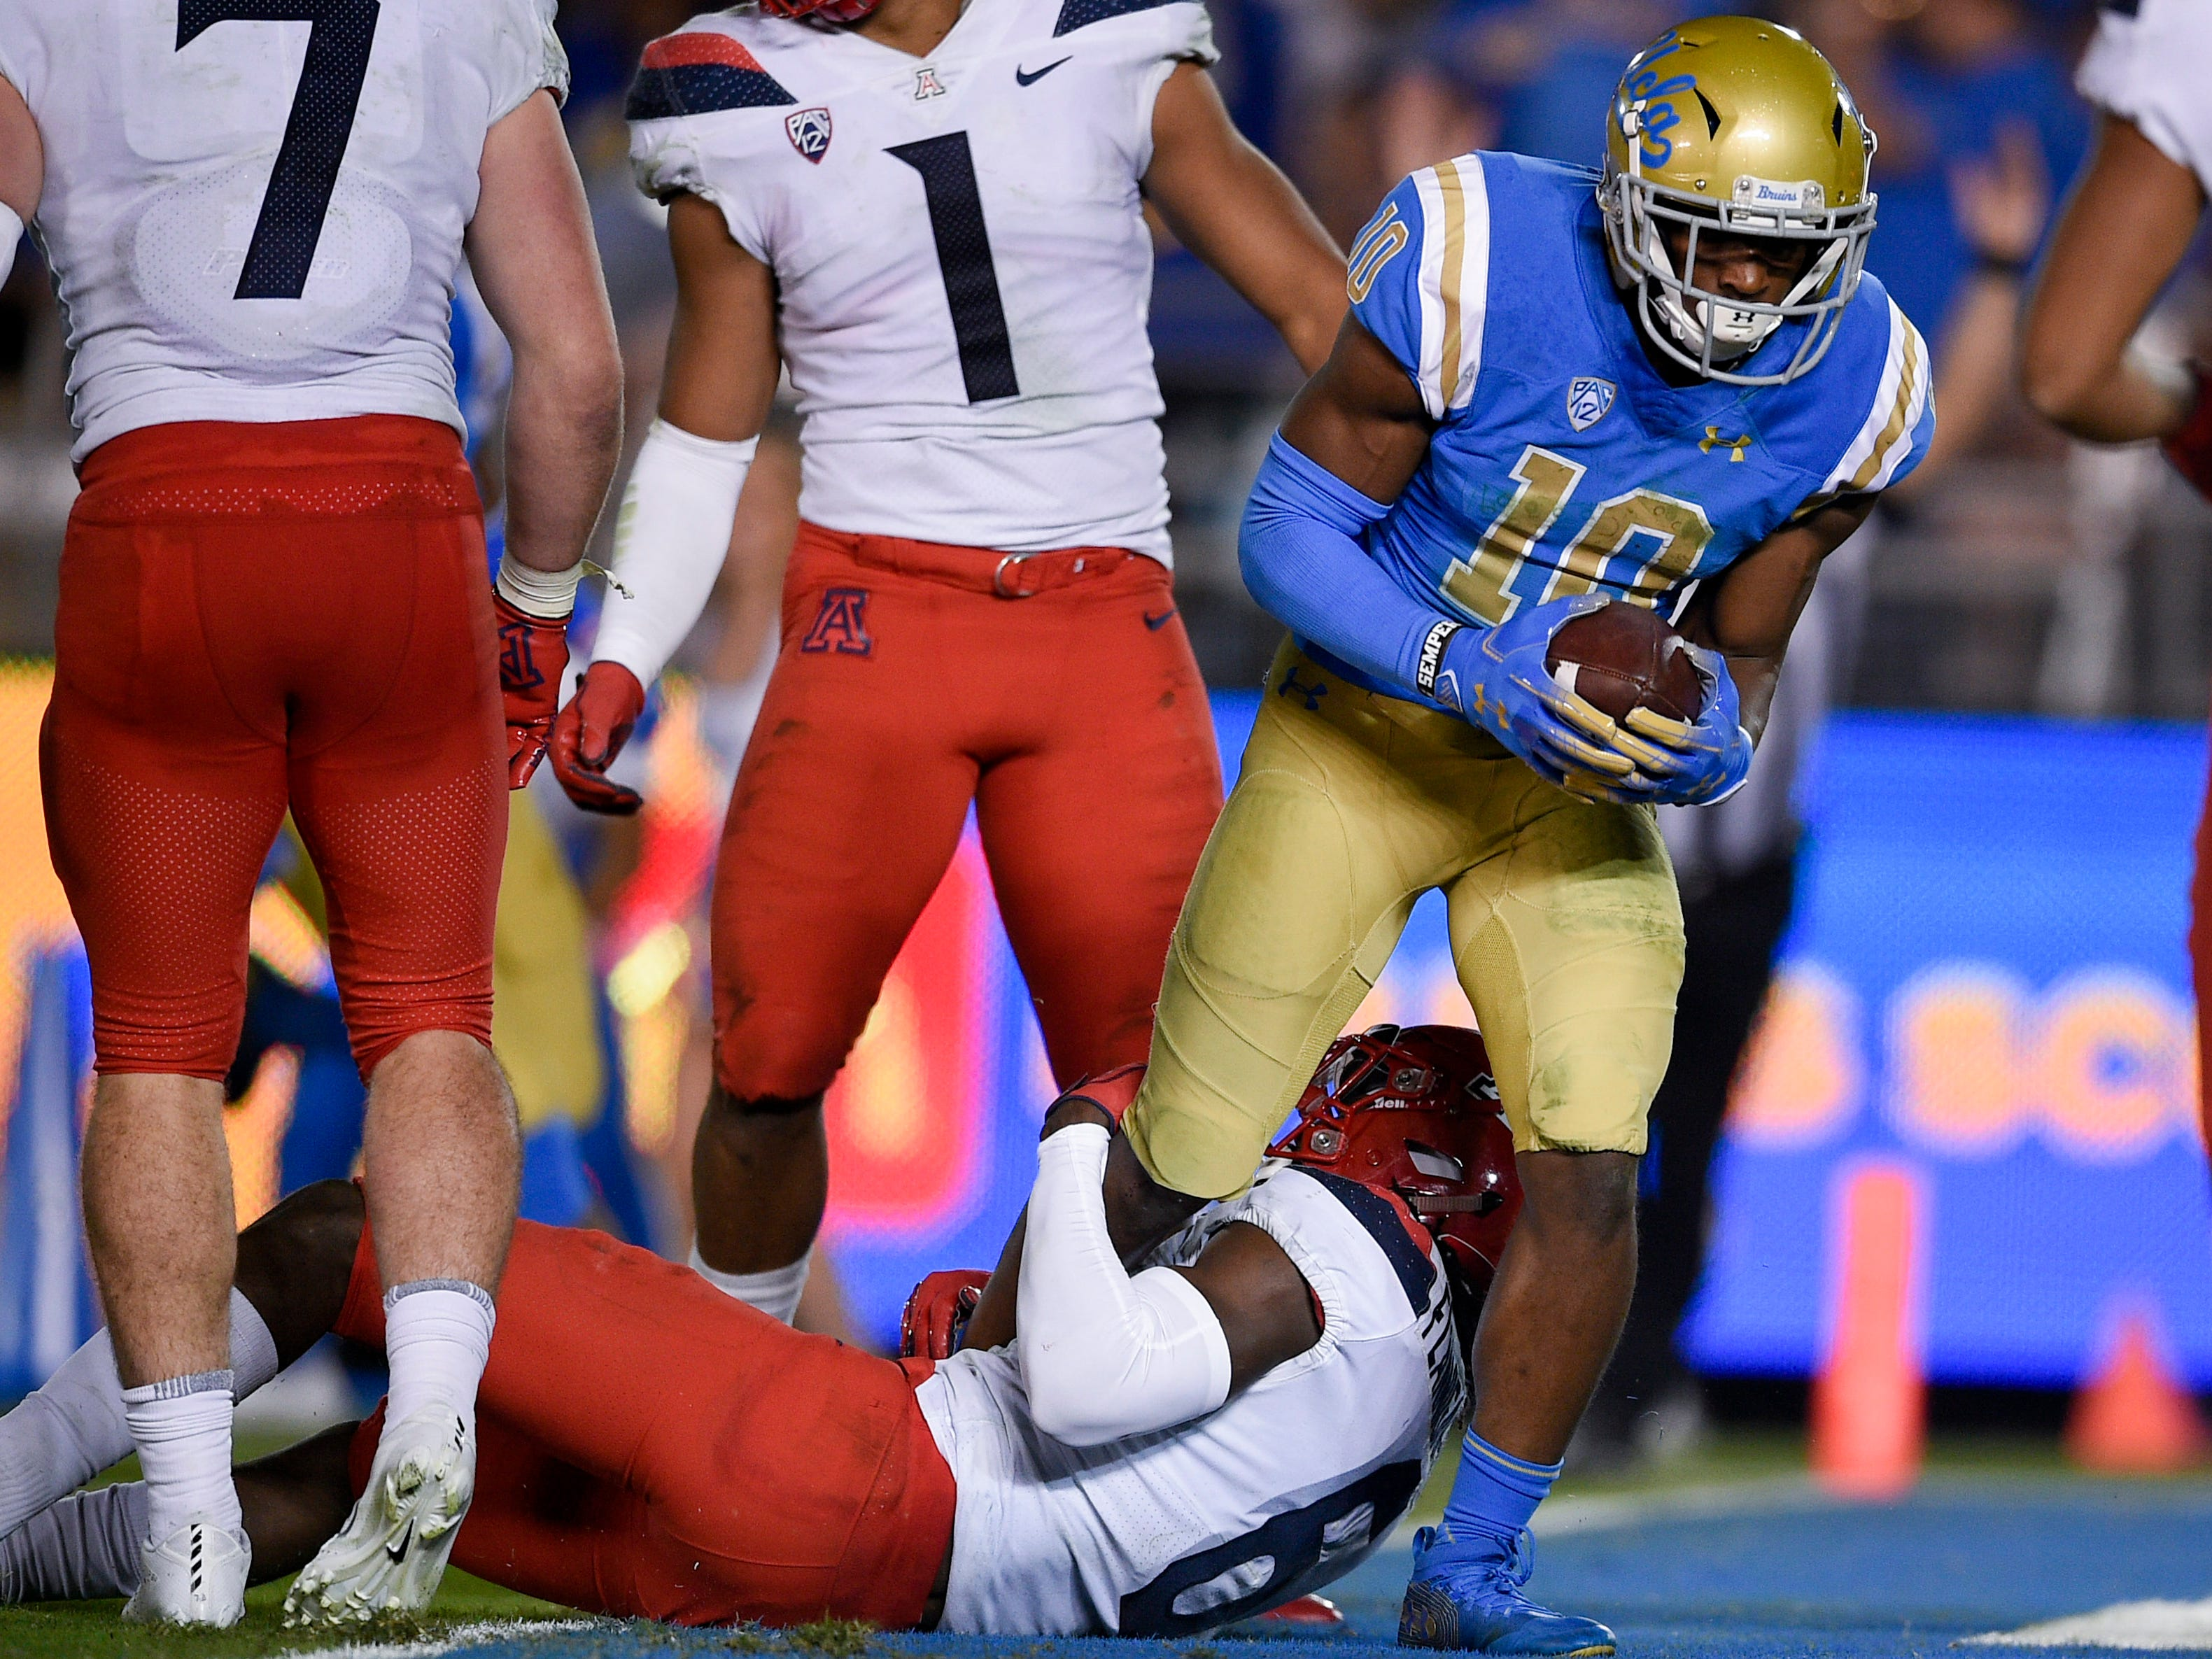 Oct 20, 2018; Pasadena, CA, USA; UCLA Bruins wide receiver Demetric Felton (10) scores a touchdown past Arizona Wildcats cornerback Tim Hough (8) during the second half at Rose Bowl. Mandatory Credit: Kelvin Kuo-USA TODAY Sports